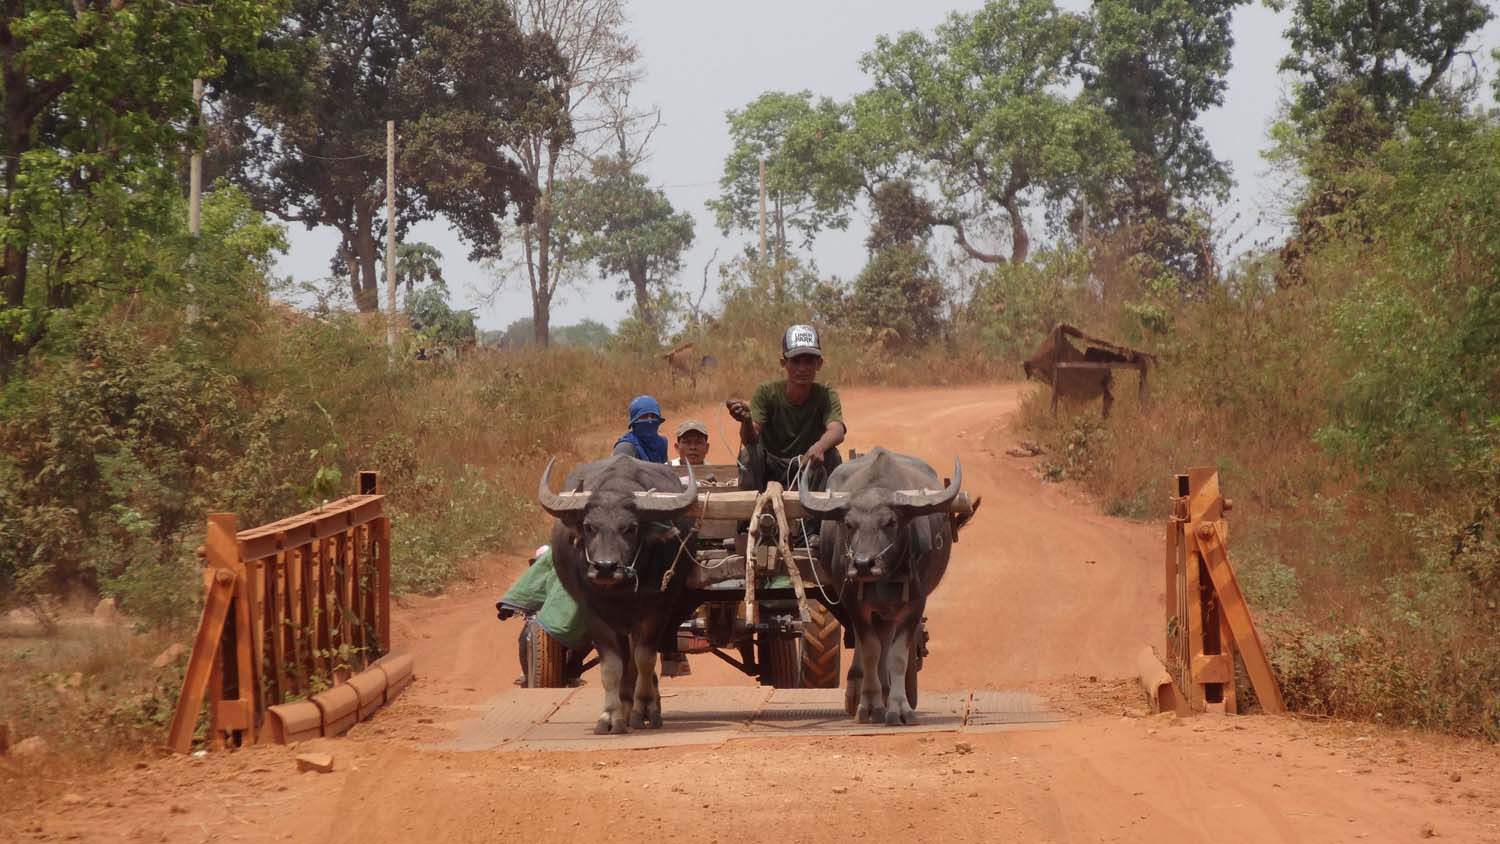 water buffalo pulling a cart, we see many of these on the roads